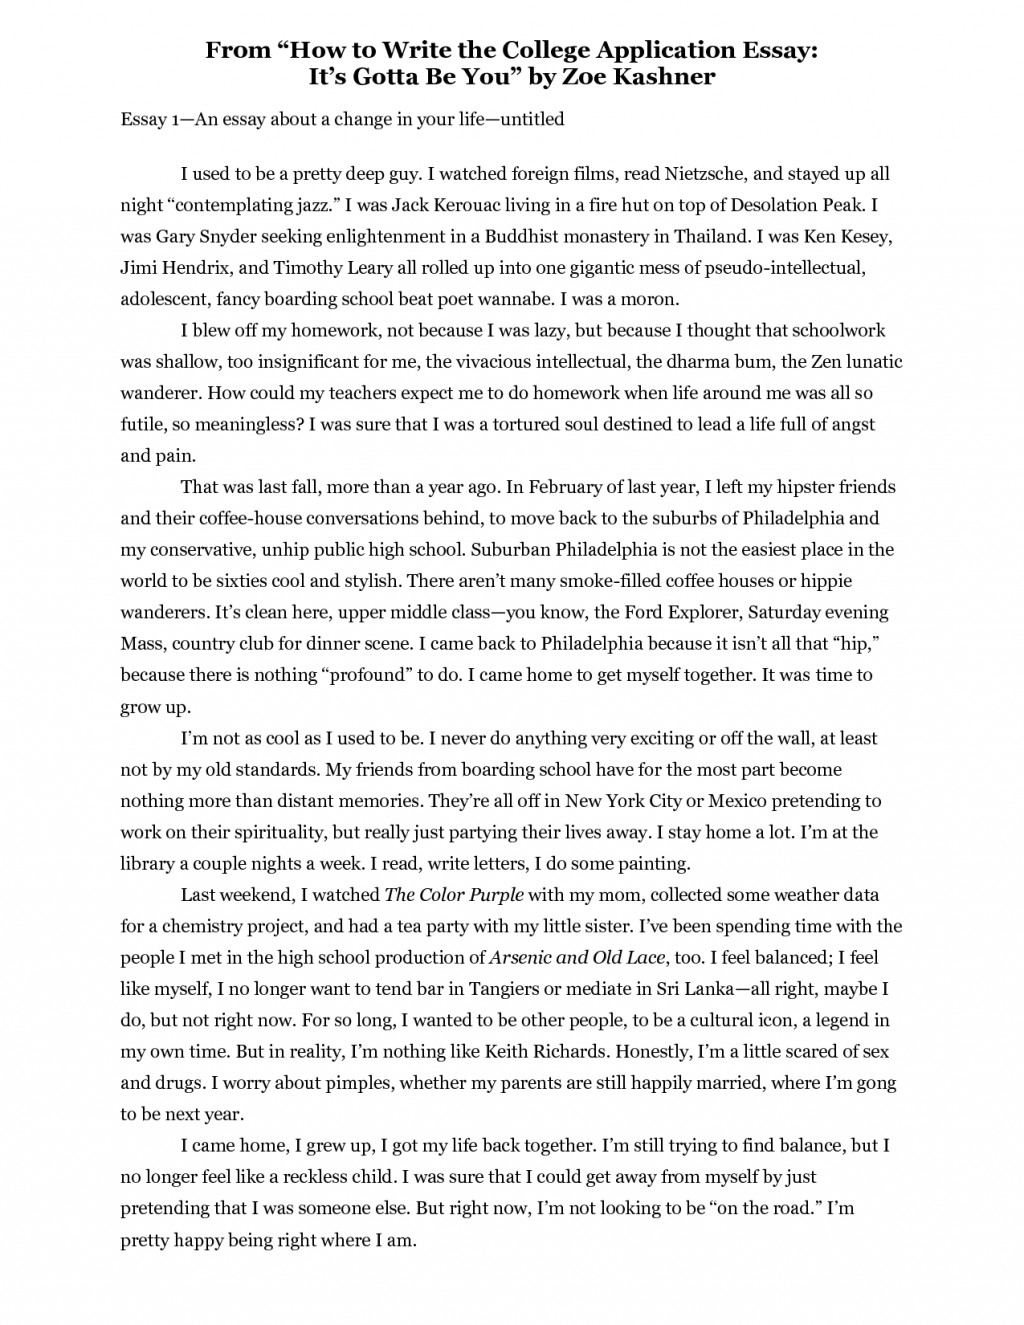 002 Oyt5kbffja Essay About Breathtaking Bullying English Love 300 Words Leadership Styles Large